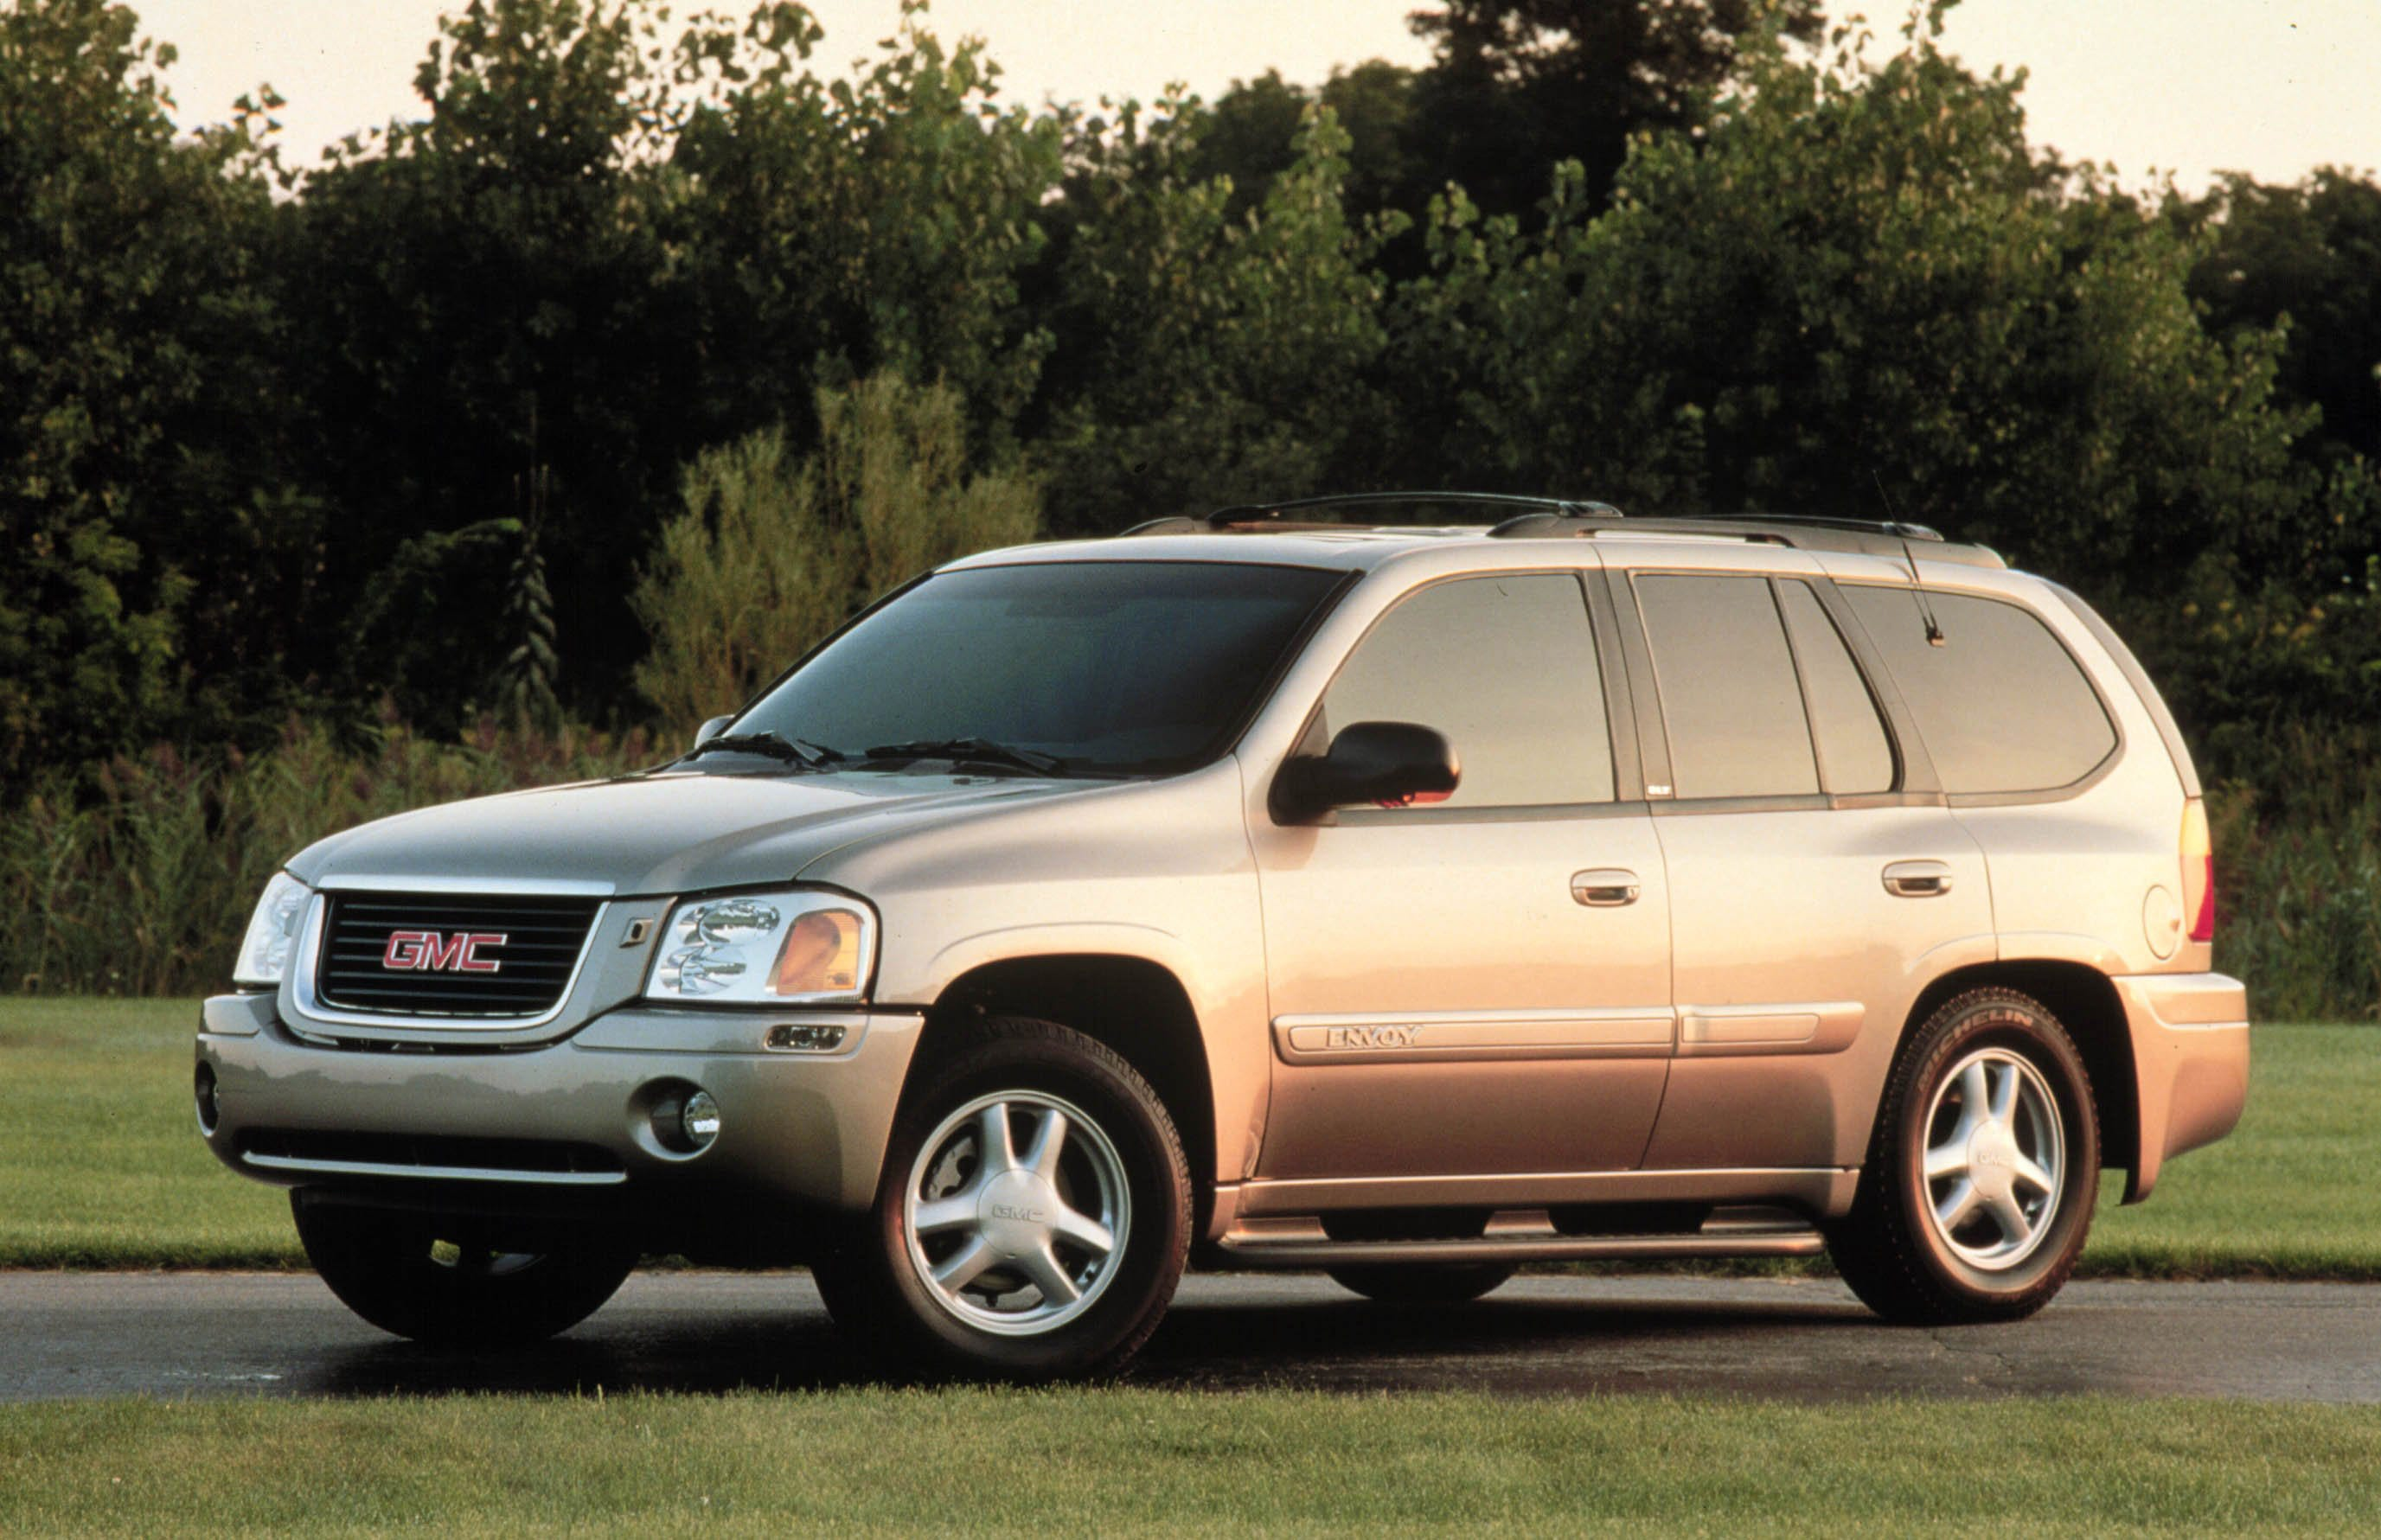 Gmc Envoy Trademark Filing Raises Speculation Suv May Be Brought Back